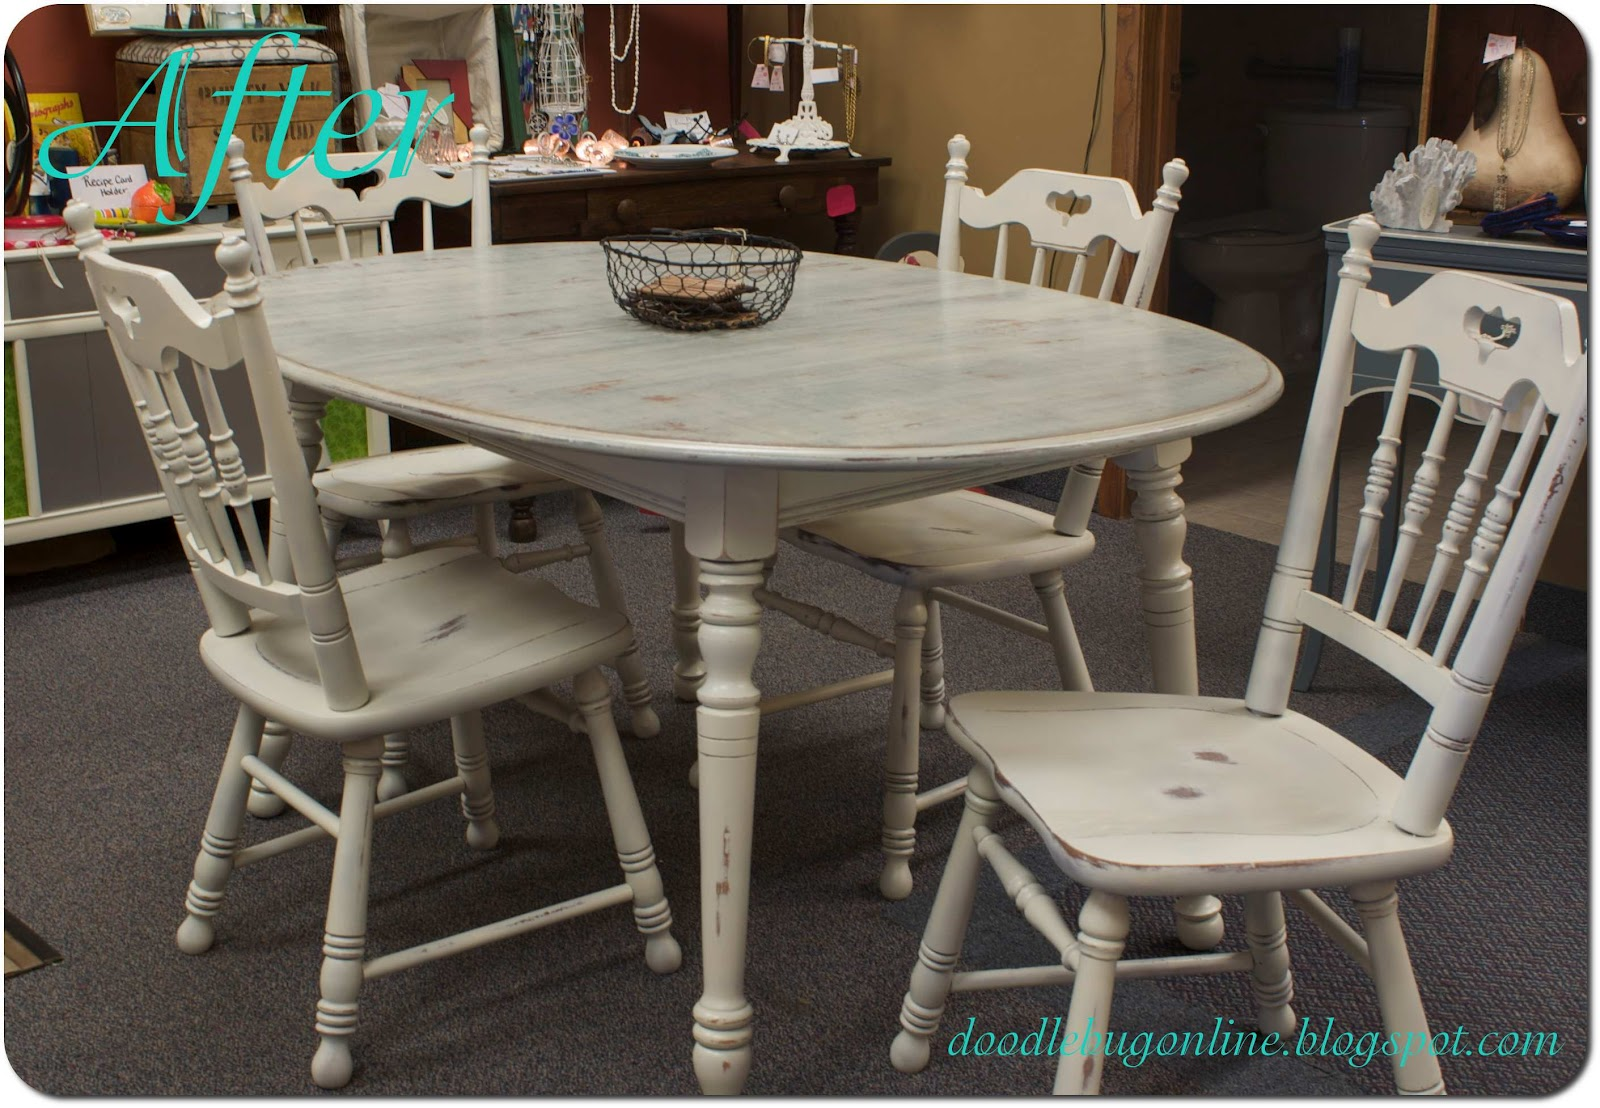 Doodle Bug: White & Grey Distressed Table & Chairs